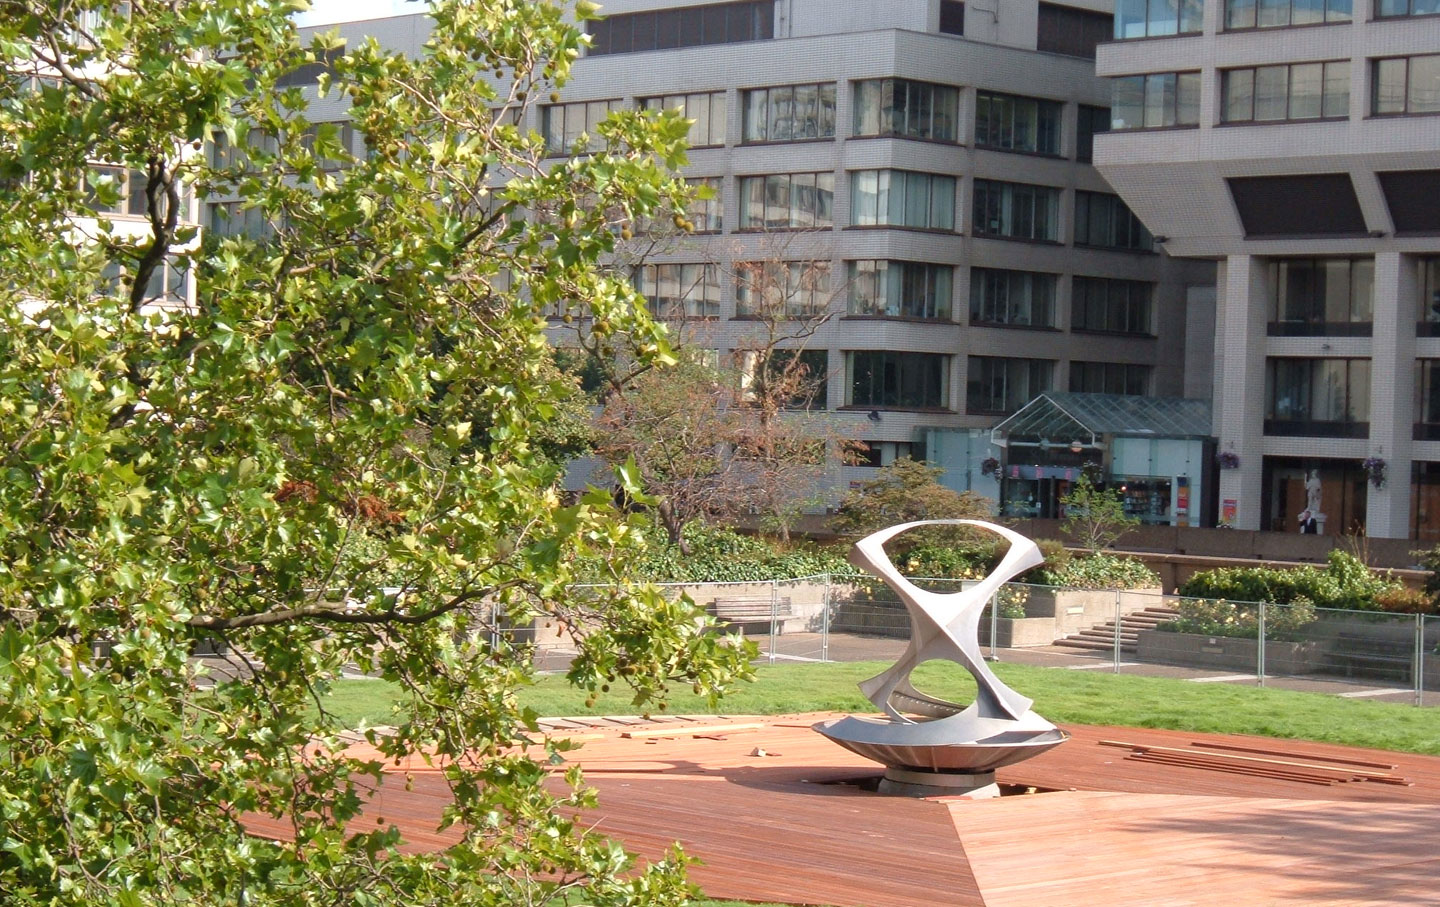 Sculpture/fountain by Naum Gabo at Guy's and St Thomas's Hospital, London, UK